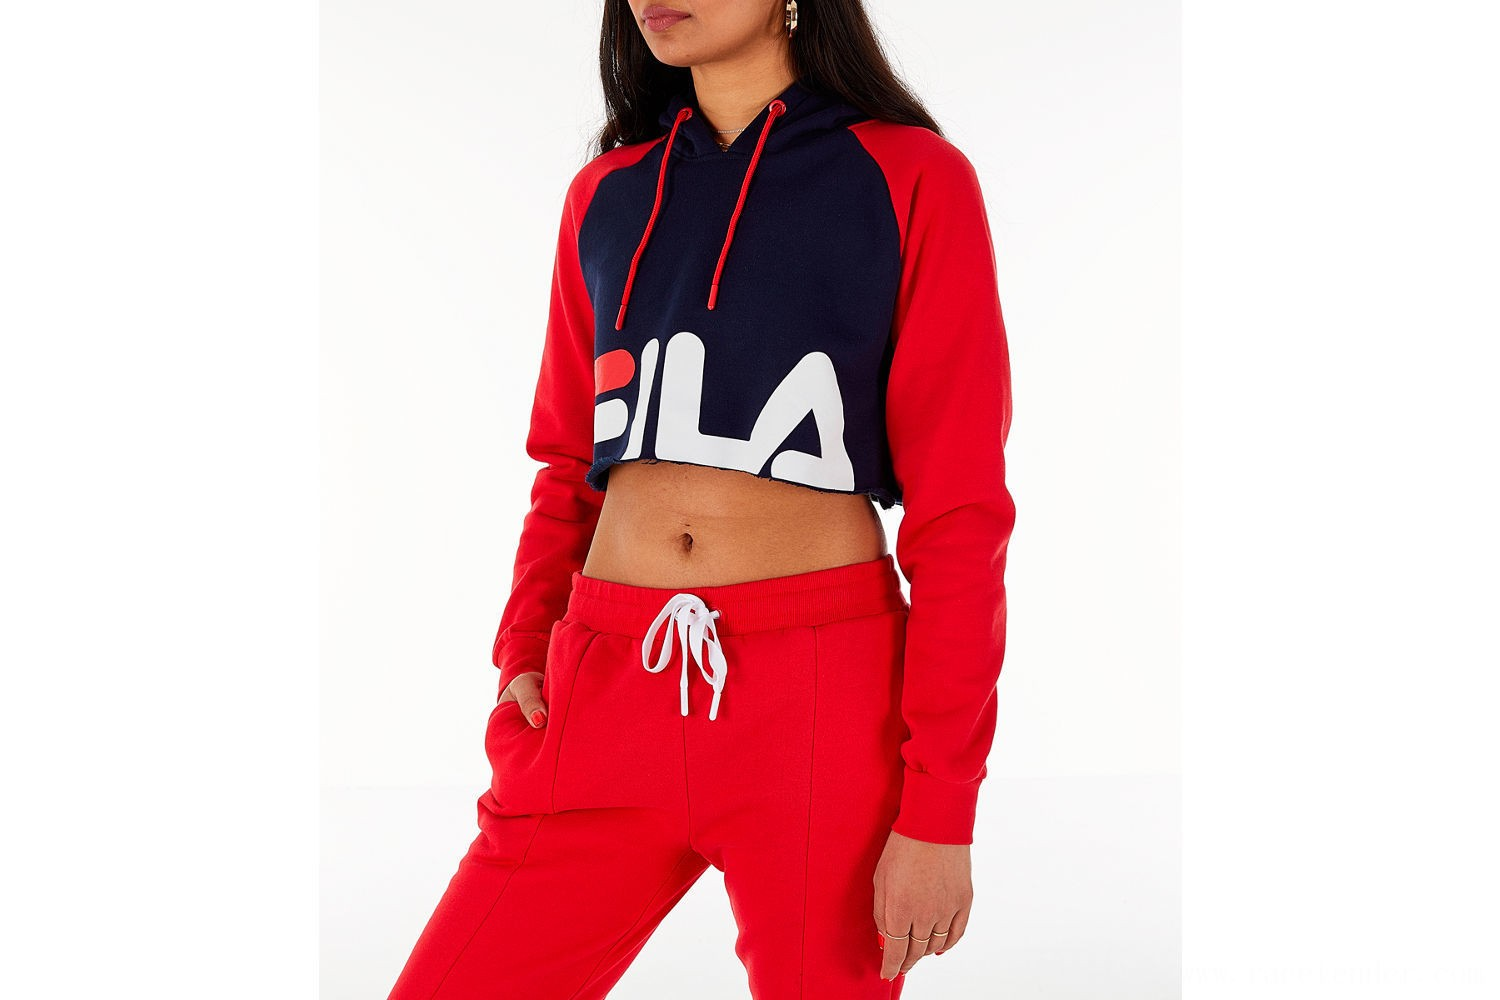 Fila Women's Luciana Hoodie - Red/White/Blue